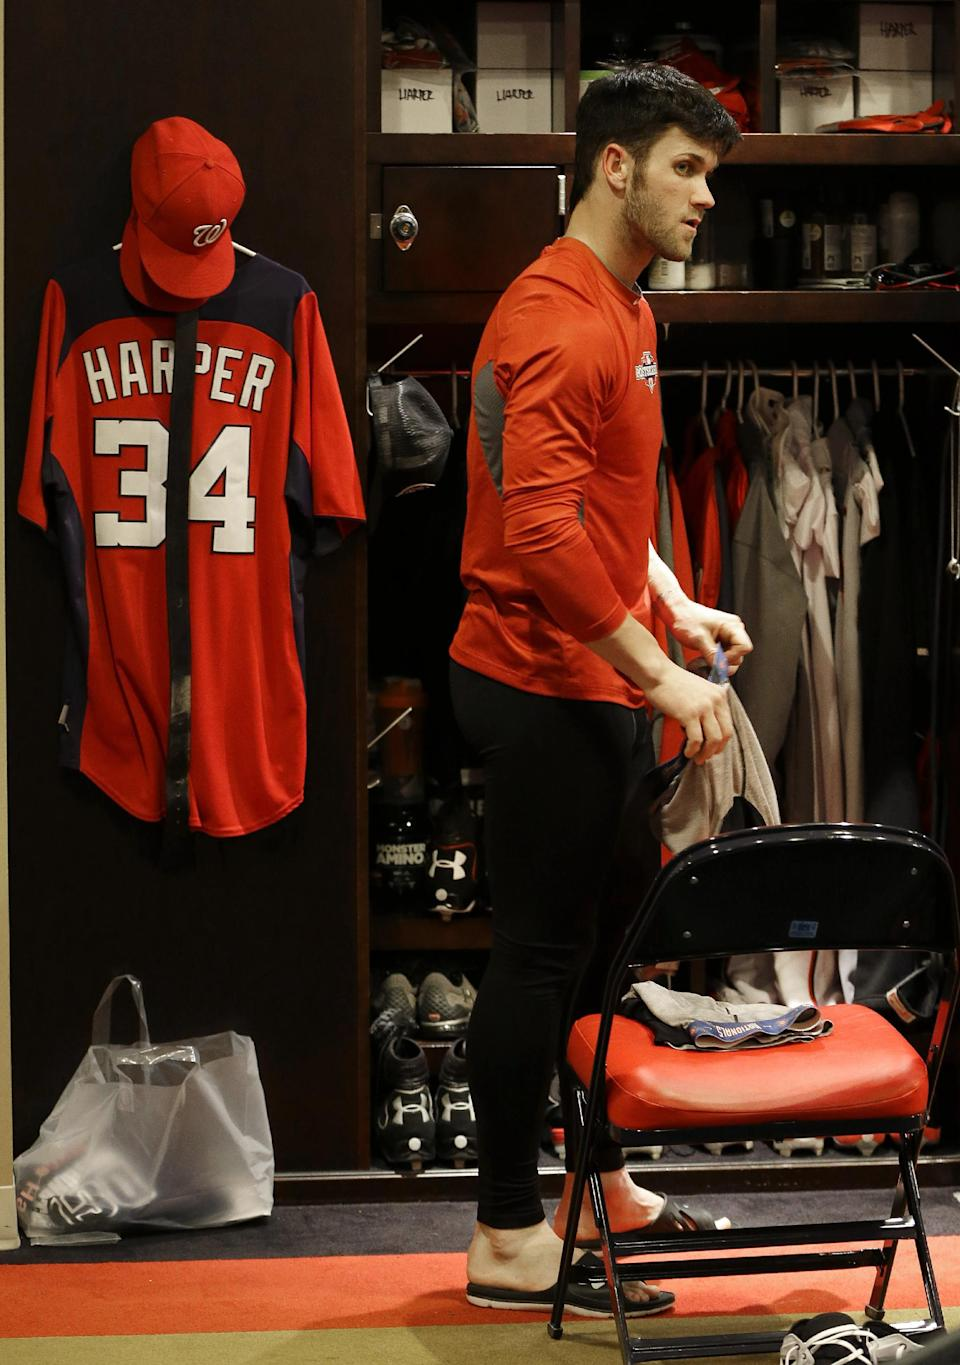 Washington Nationals center fielder Bryce Harper stands by his locker after Game 5 of the National League division baseball series against the St. Louis Cardinals on Saturday, Oct 13, 2012, in Washington. St. Louis won 9-7. (AP Photo/Pablo Martinez Monsivais)